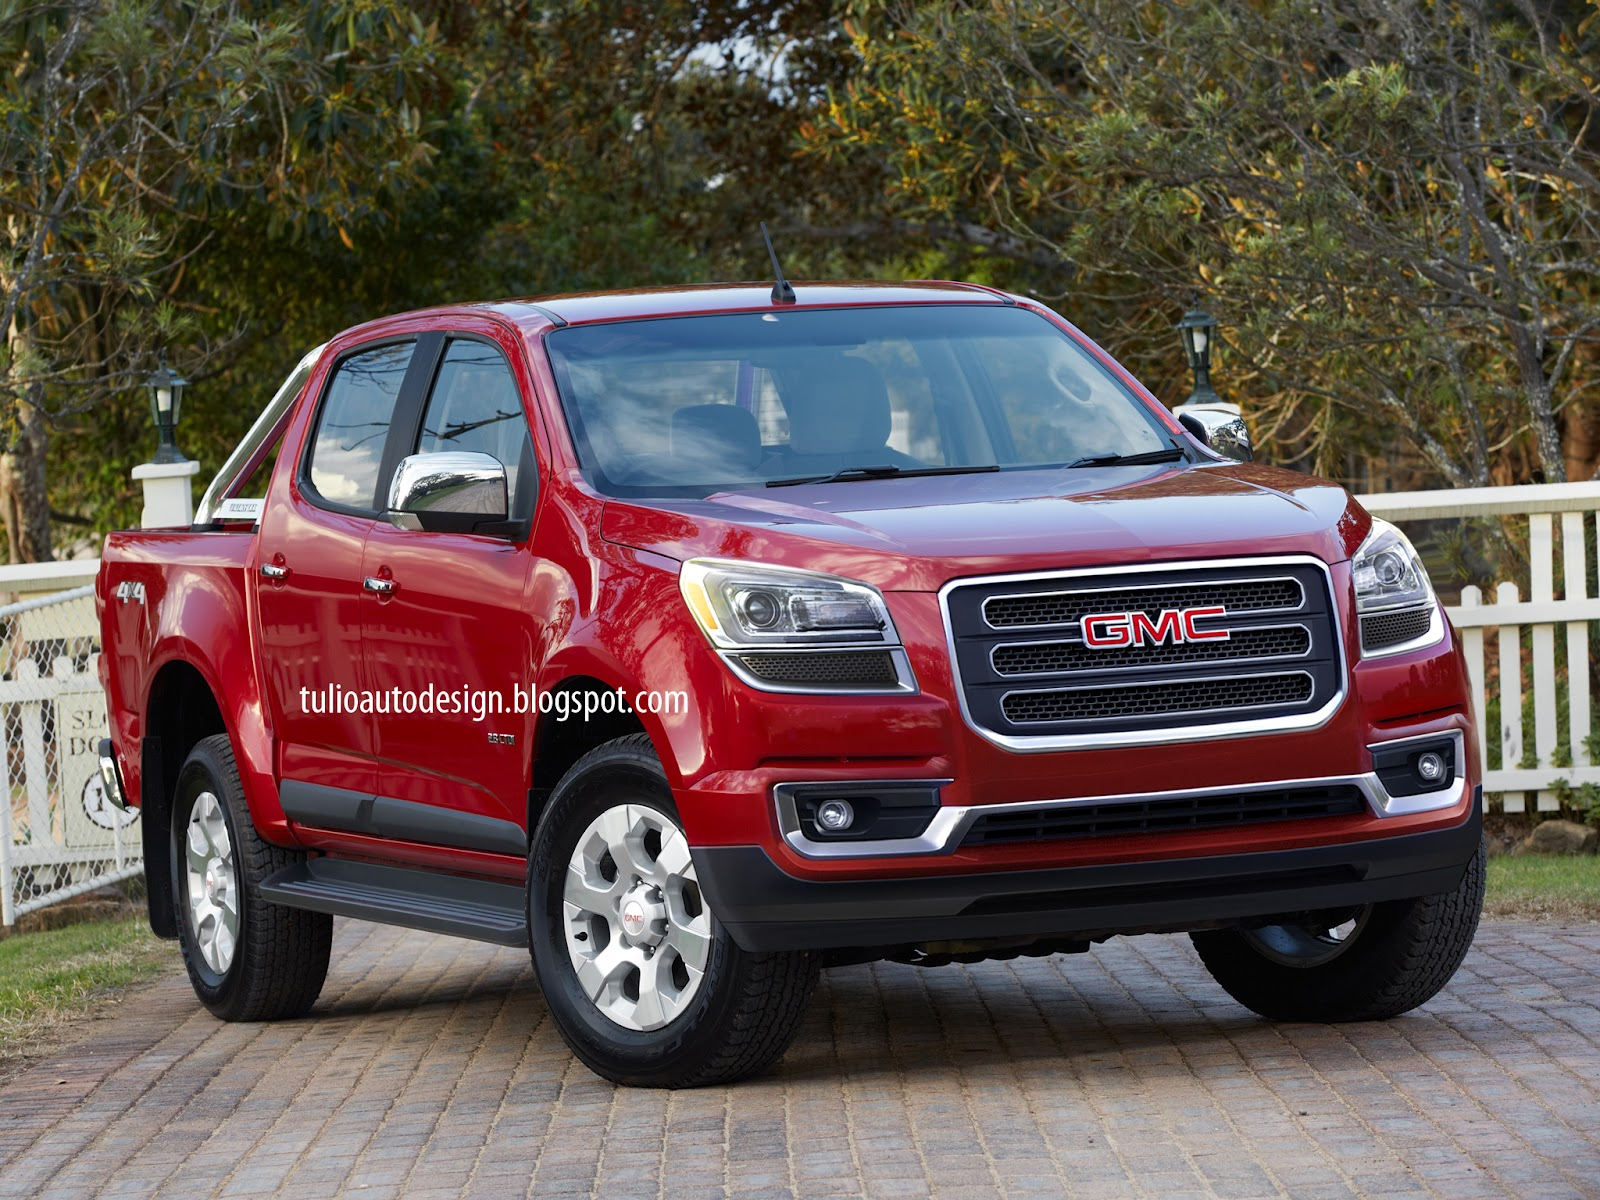 Chevy Colorado Vs Gmc Canyon Upcoming Cars 2020